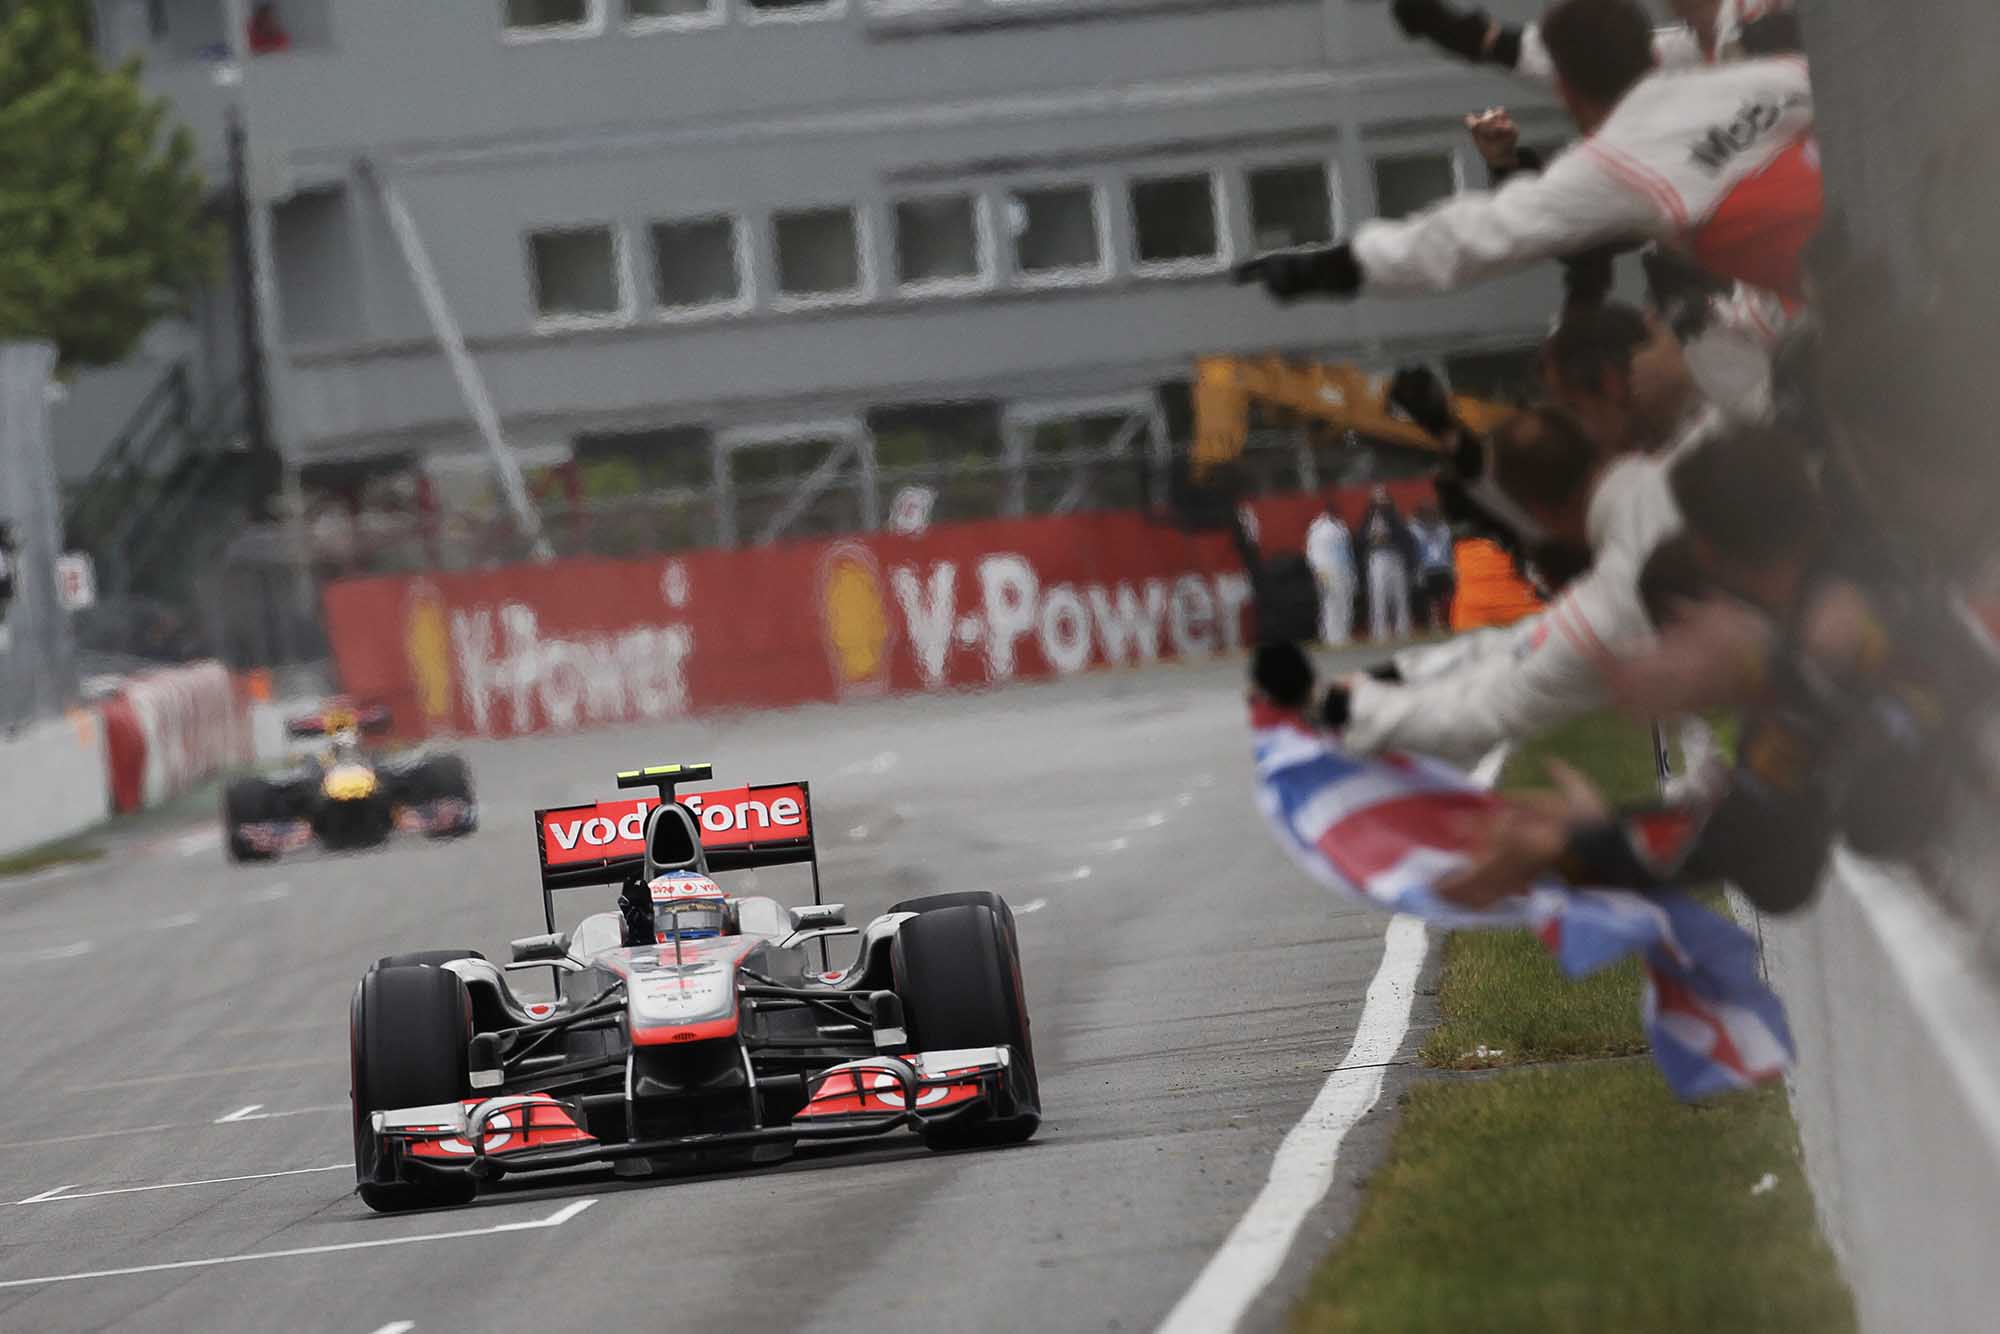 Jenson Button takes the chequered flag to win 2010 Canadian Grand Prix Montreal